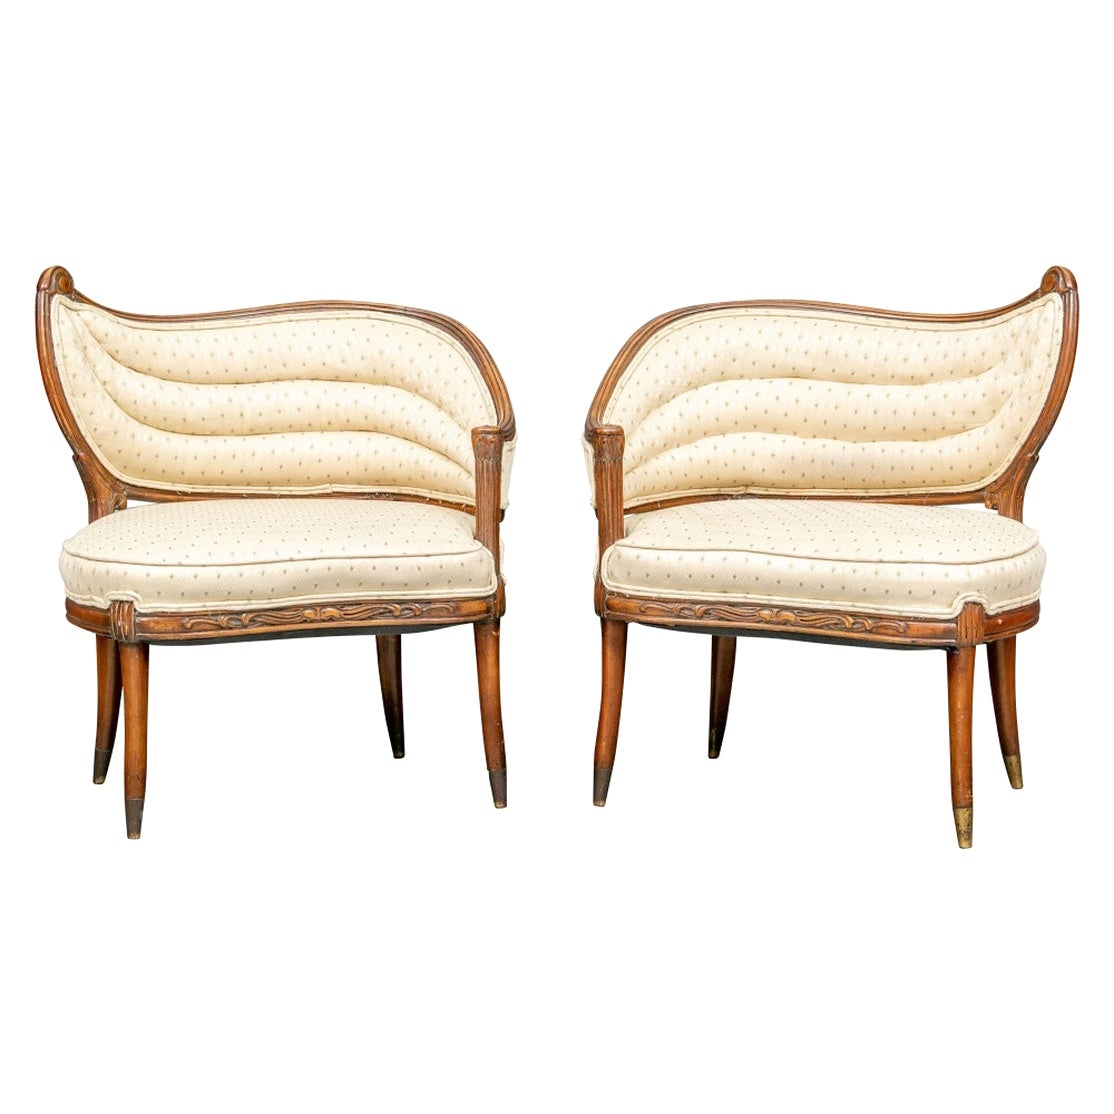 Fine Pair of Complimentary Hollywood Regency Style Lounge Chairs